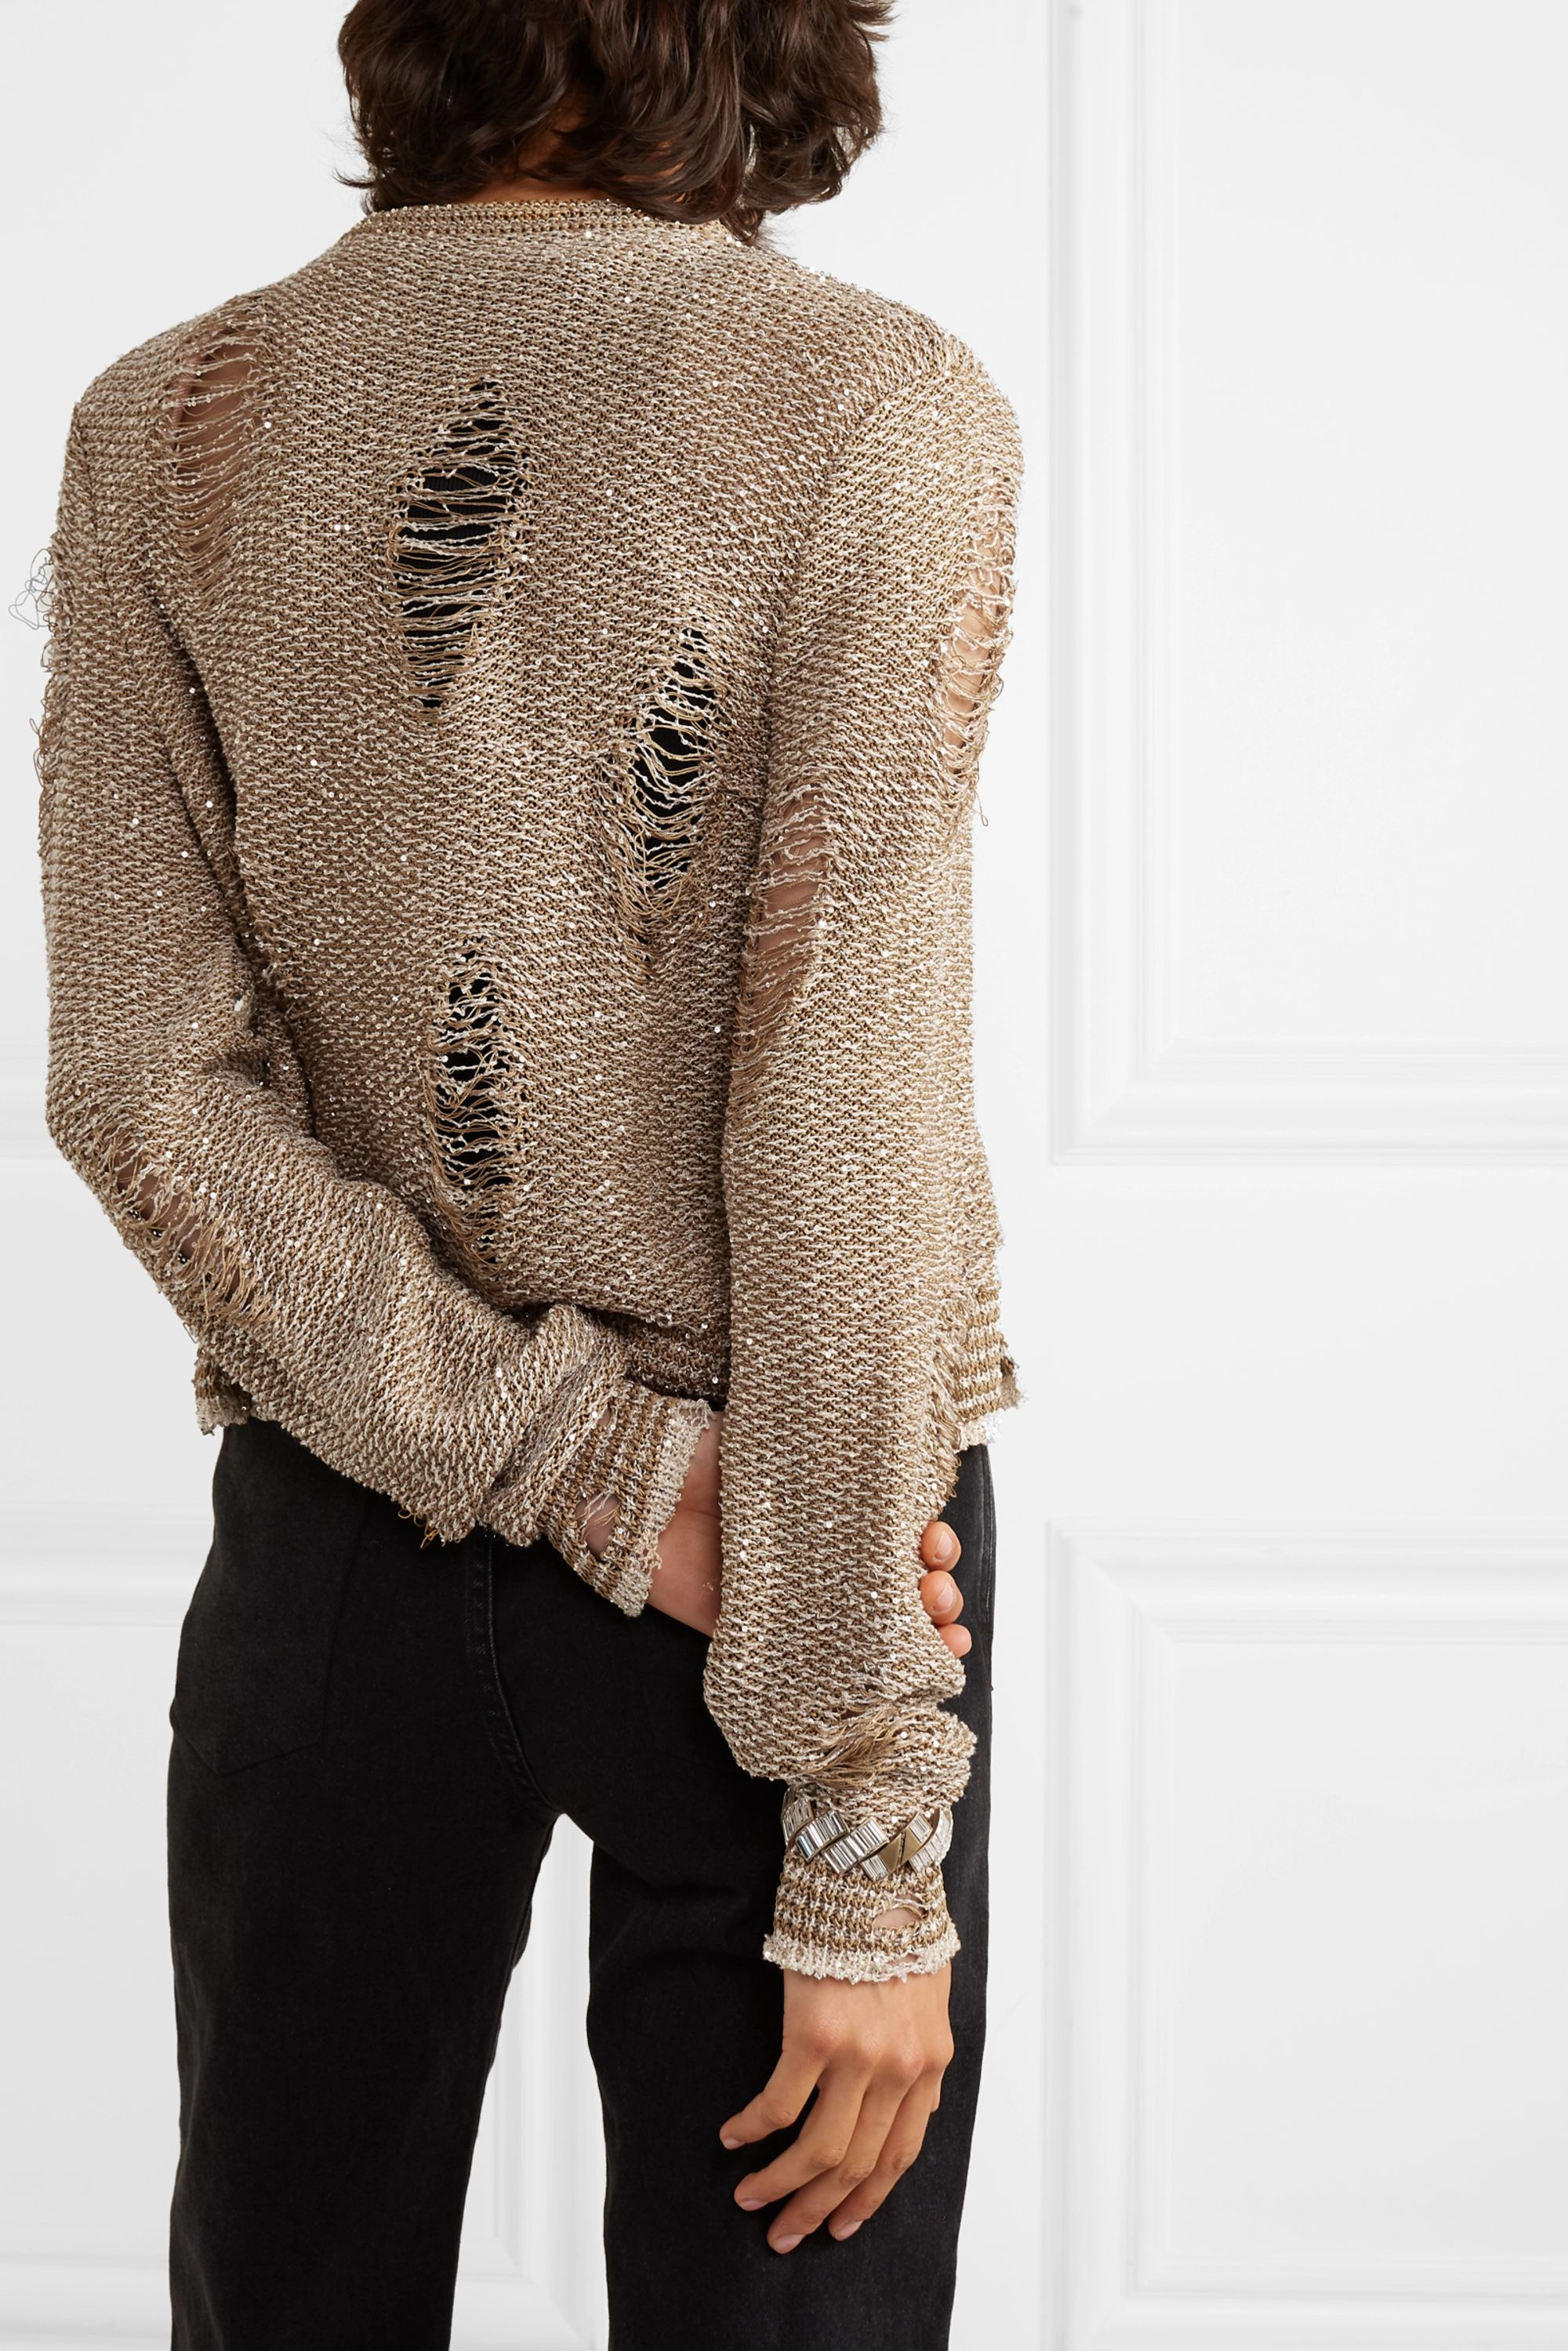 Balmain Distressed sequin-embellished knitted cardigan